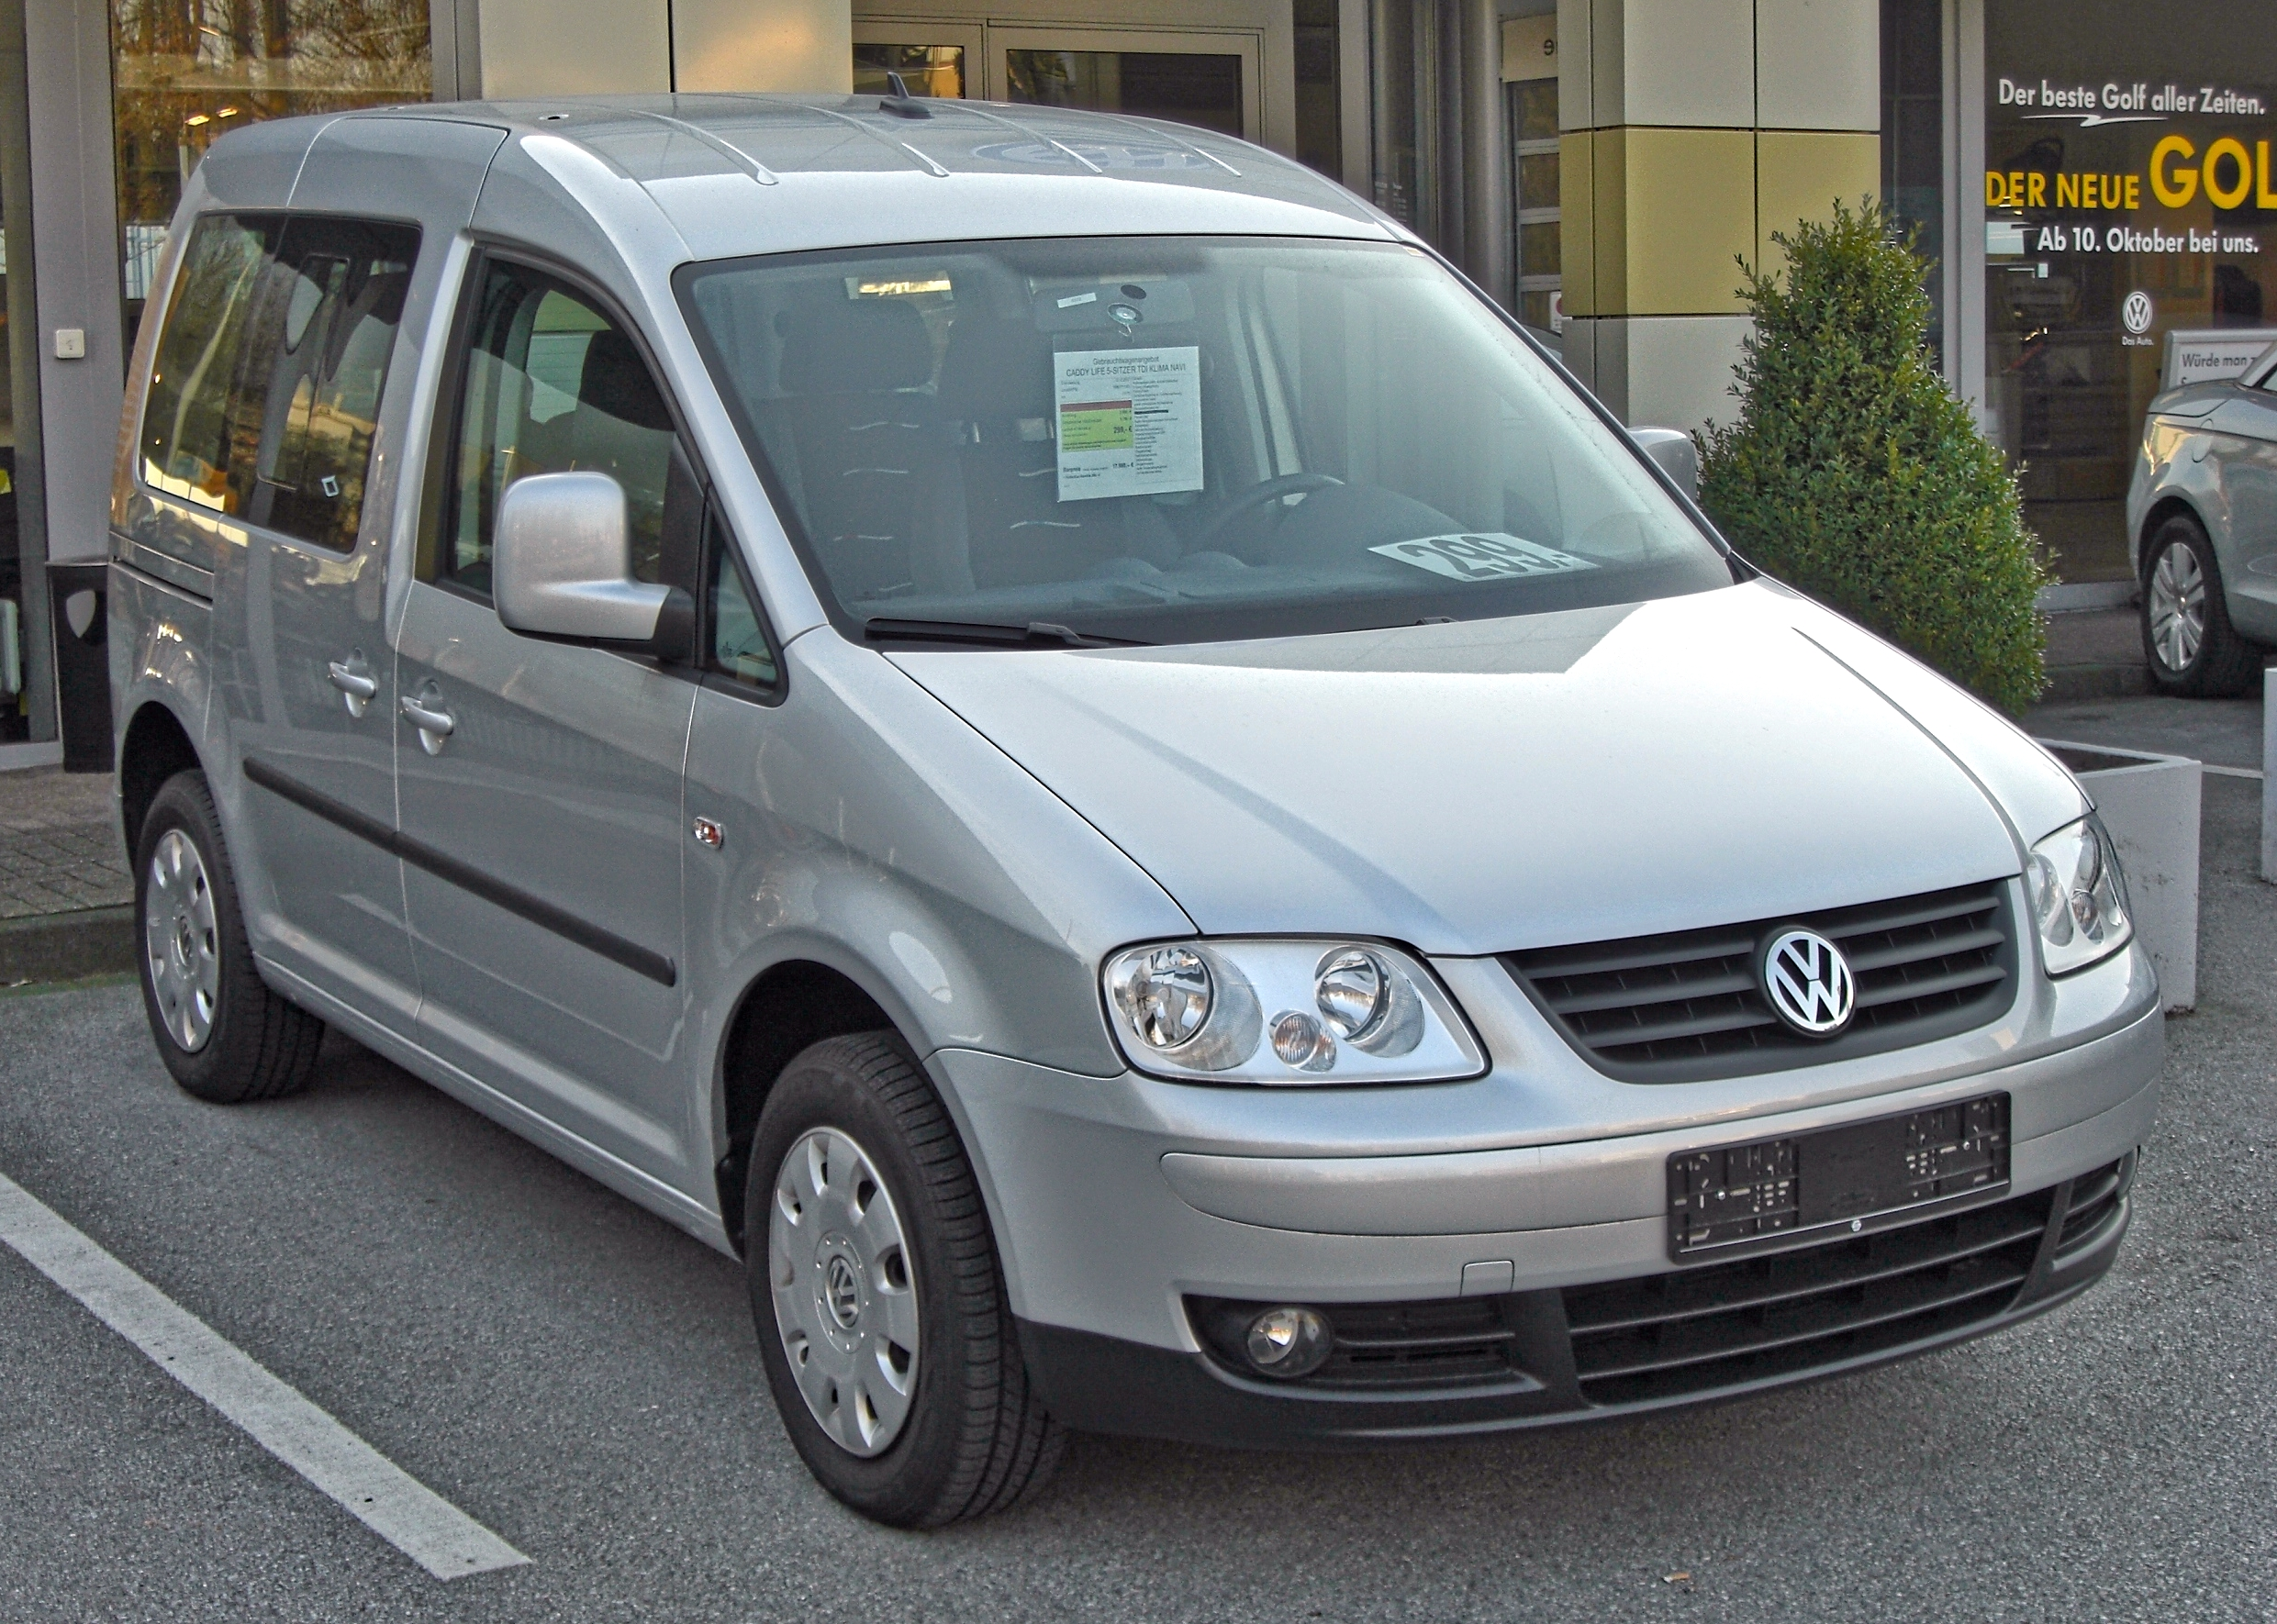 File:VW Caddy Life III 20090321 front.jpg - Wikimedia Commons